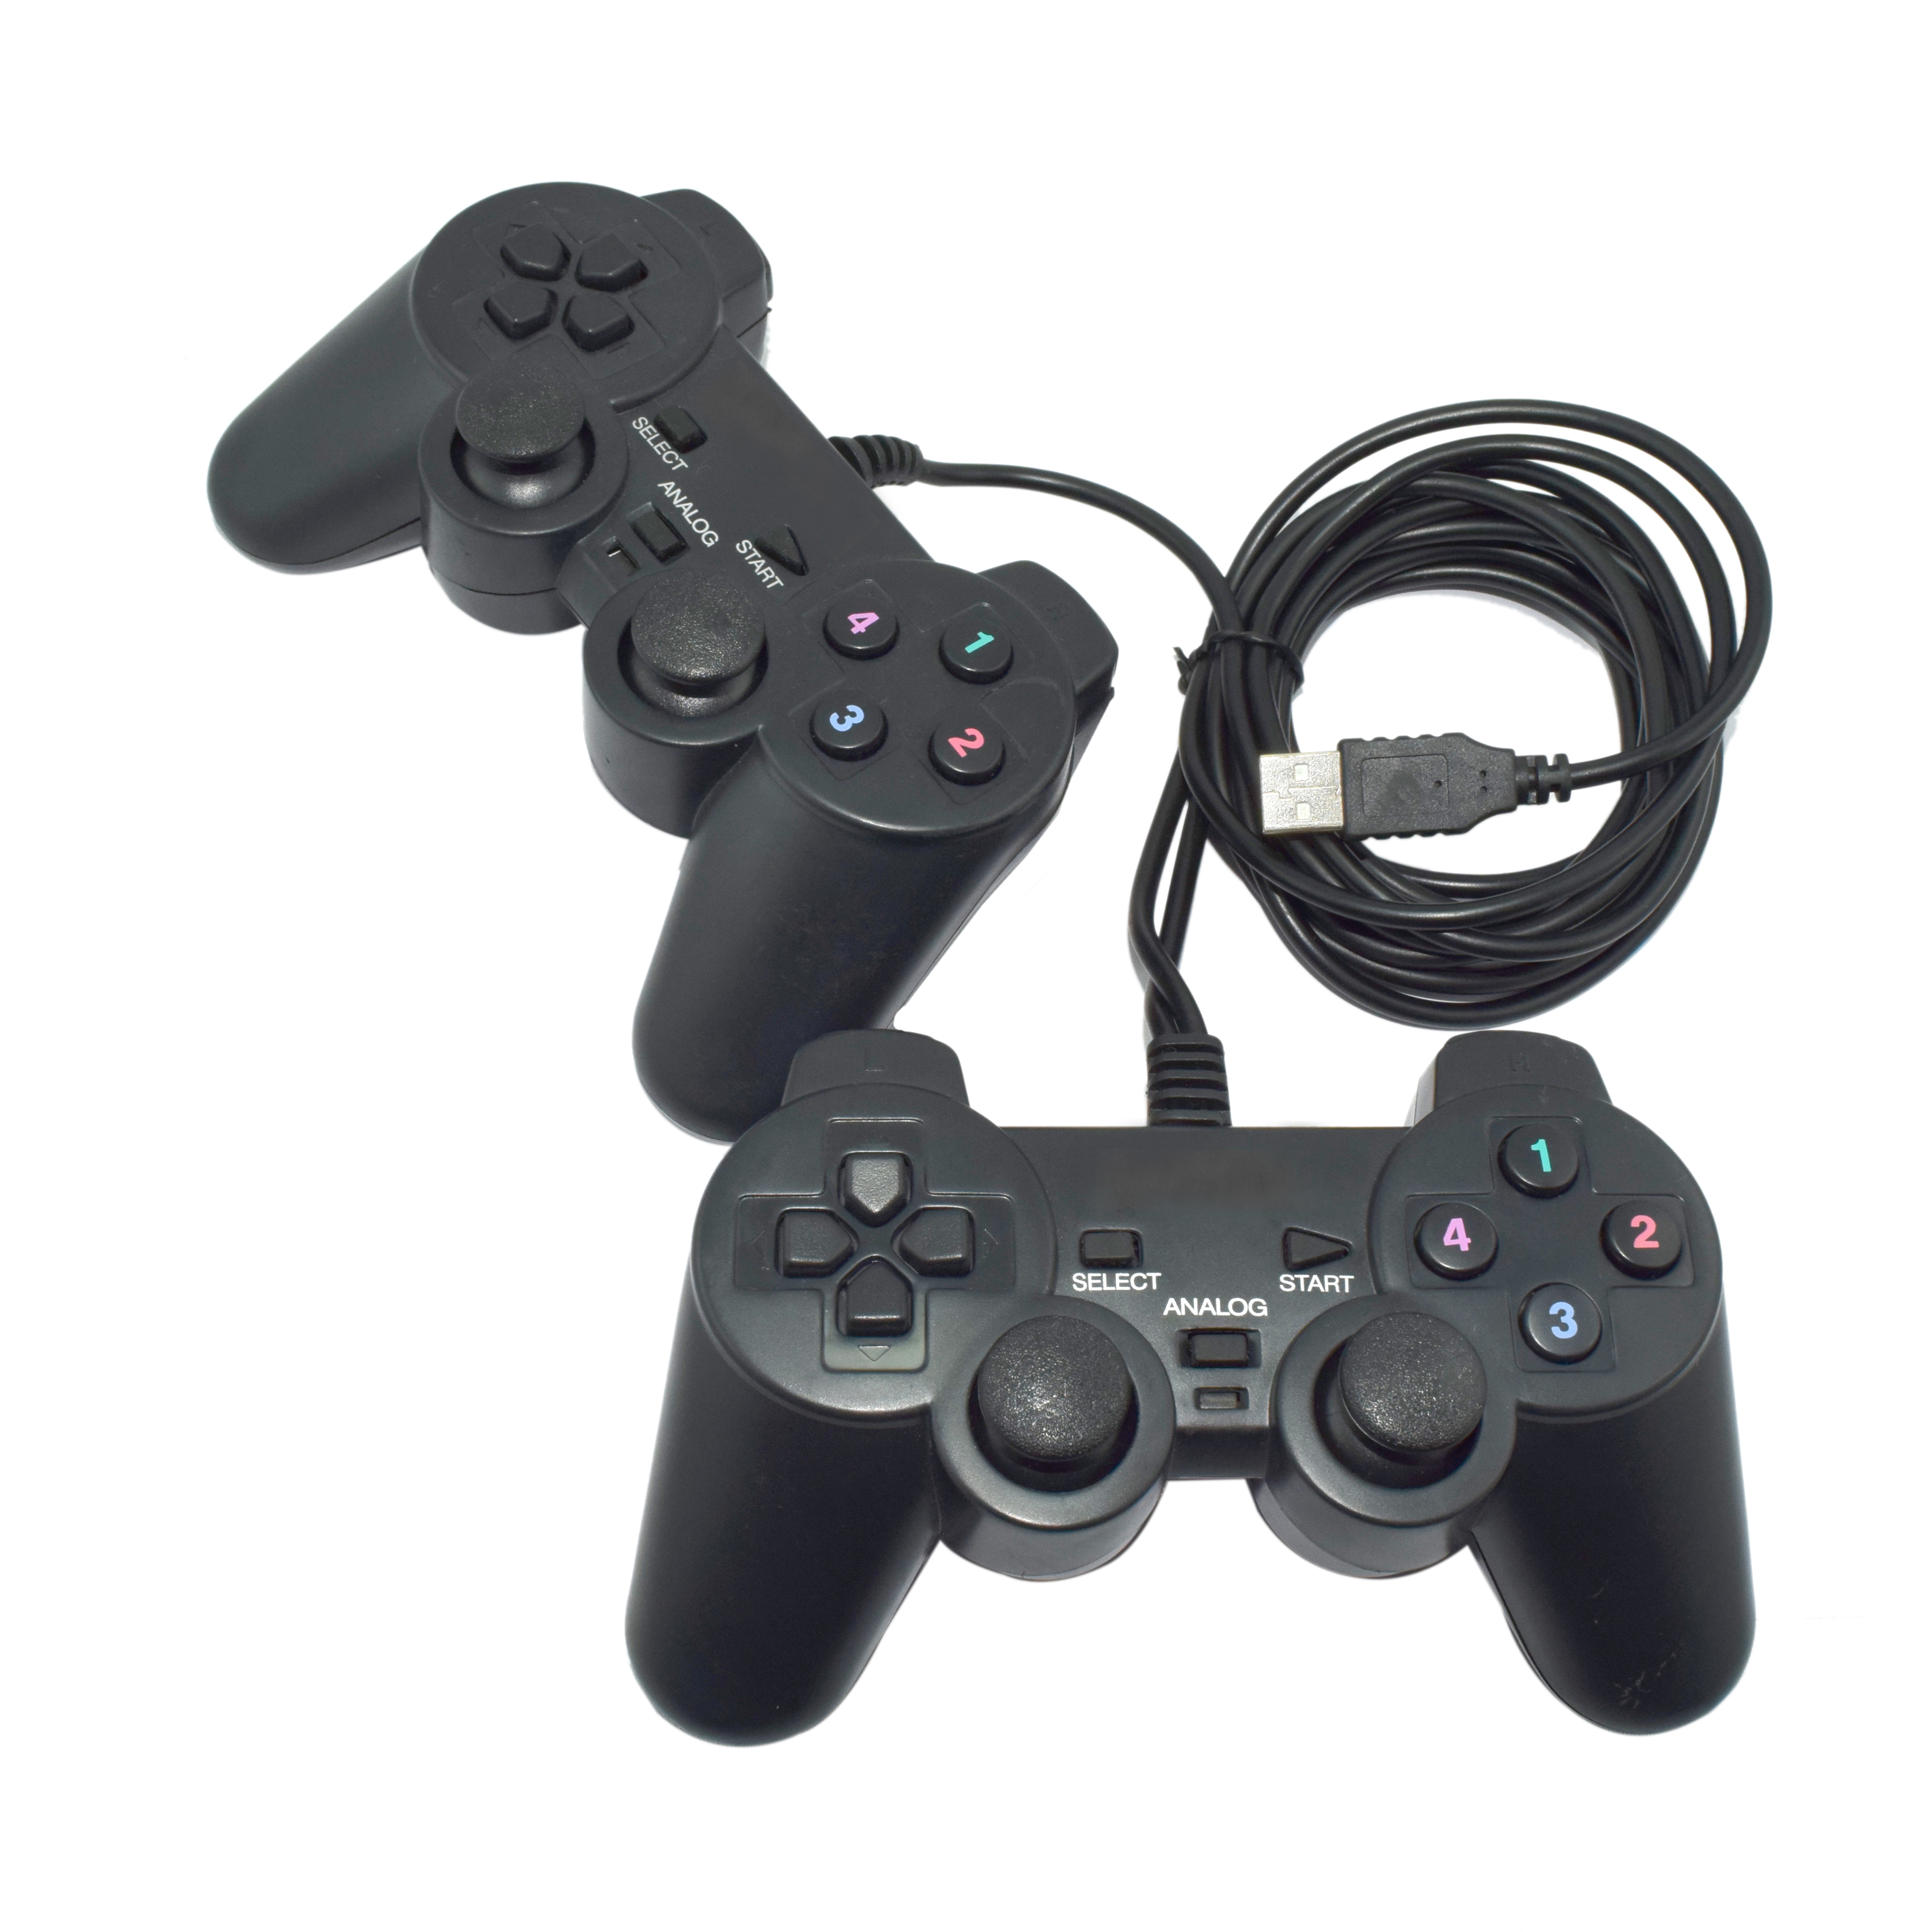 Storite 2 In 1 Computer Gamepad(Black, For PC)